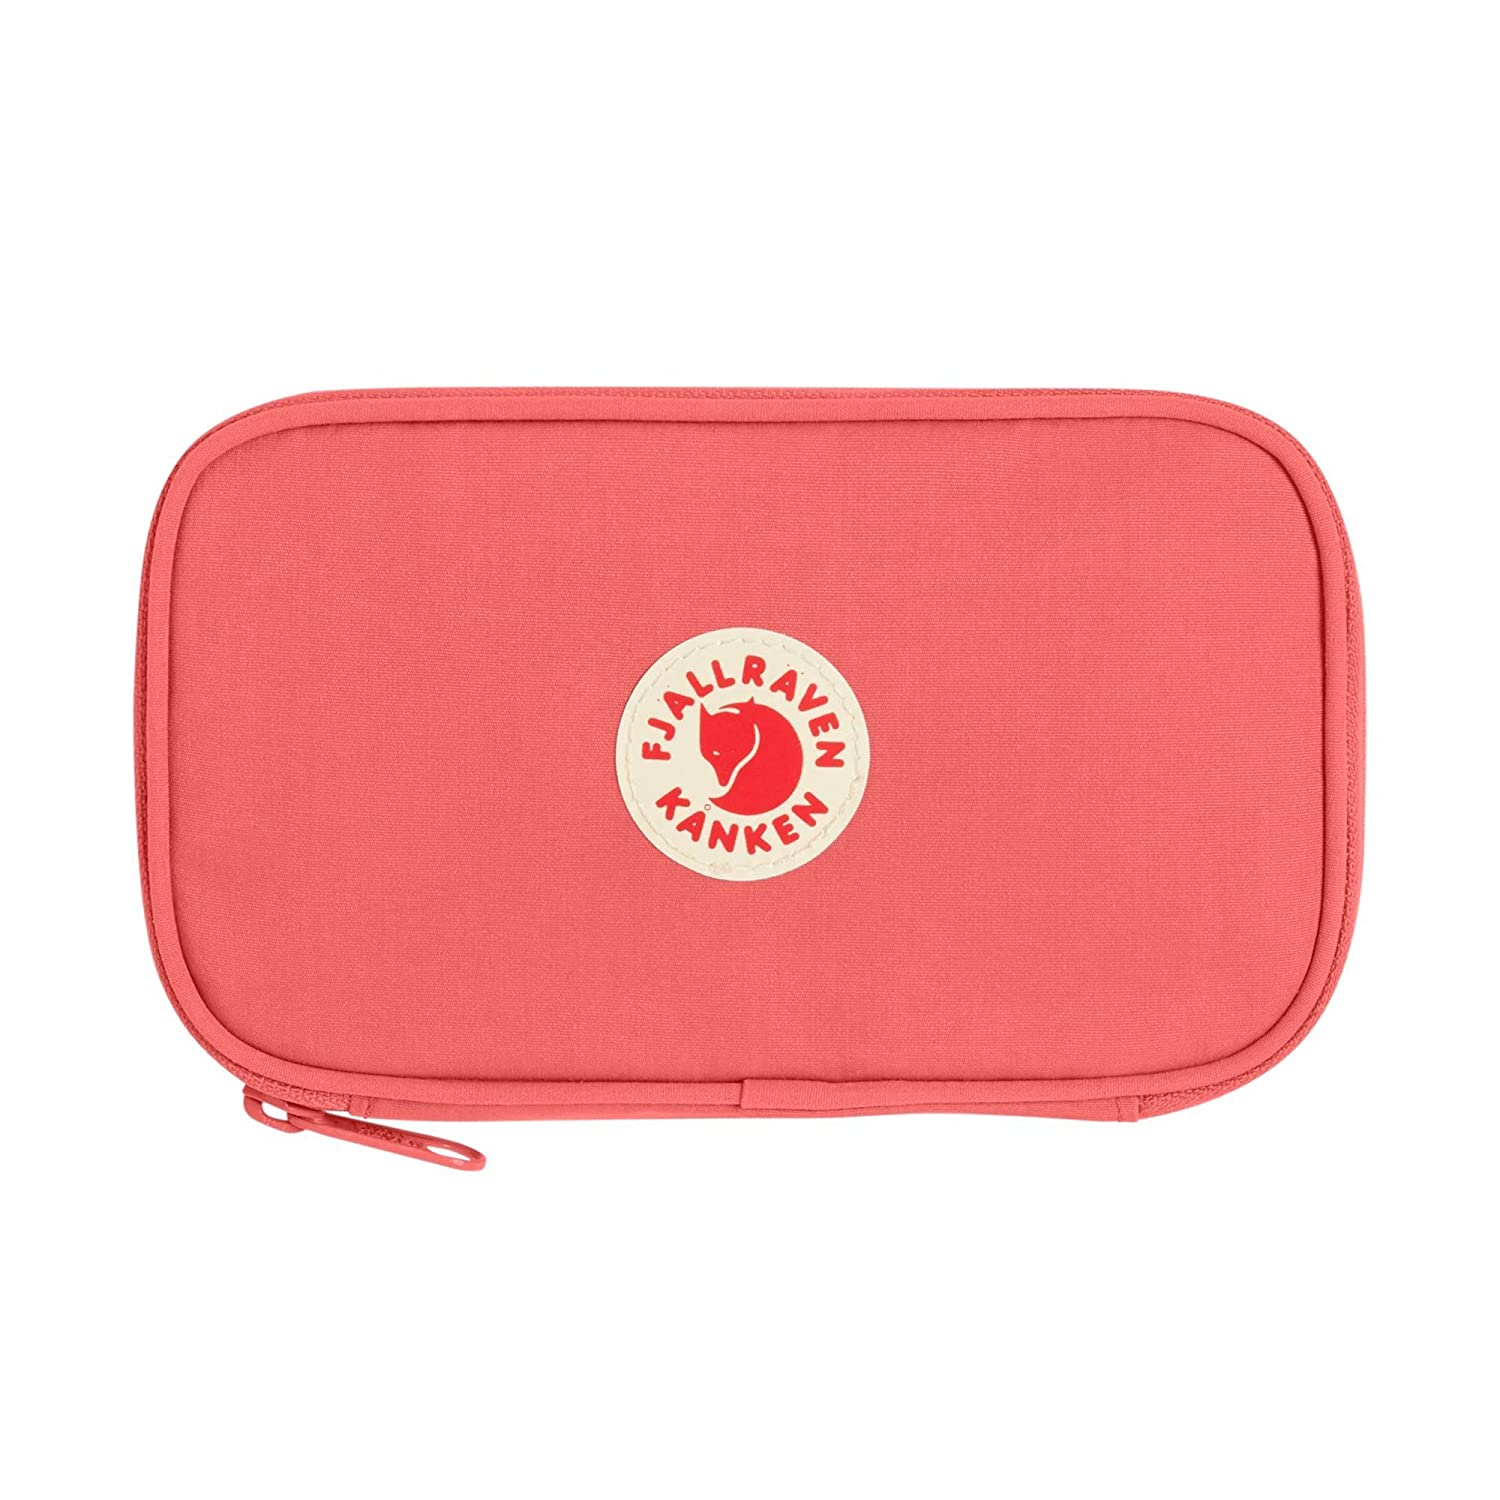 Kanken Travel Wallet for Passports Ox Red F23781-Ox Red Fjallraven